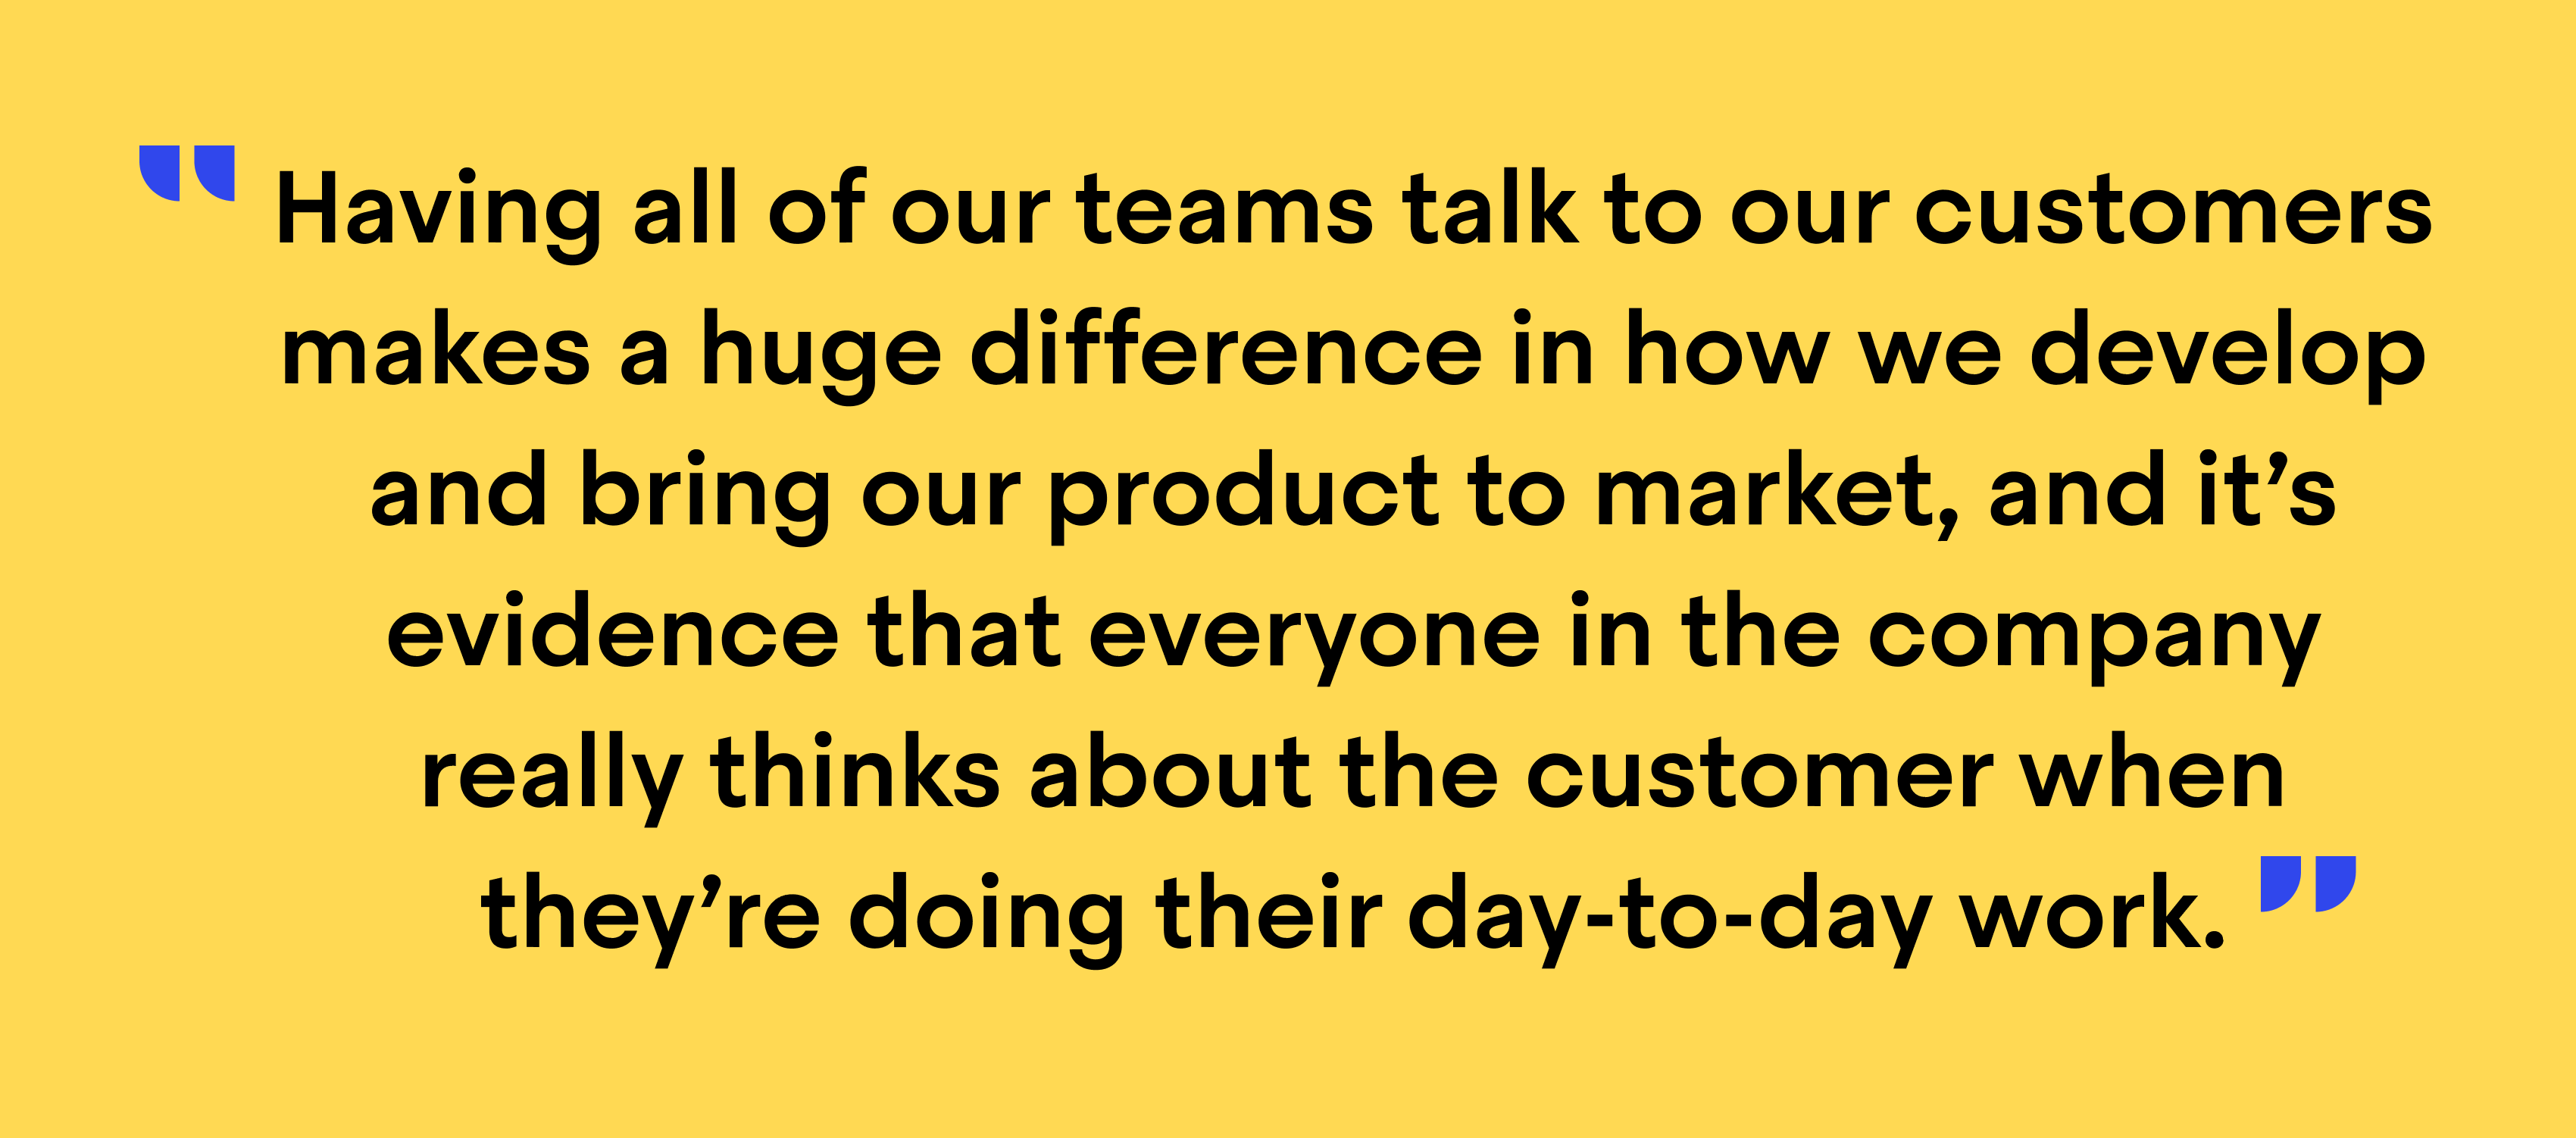 """Quote from Richard Hall, Director of Support Operations at Zapier: """"Having all of our teams talk to our customers makes a huge difference in how we develop and bring our product to market, and it's evidence that everyone in the company really thinks about the customer when they're doing their day-to-day work"""""""